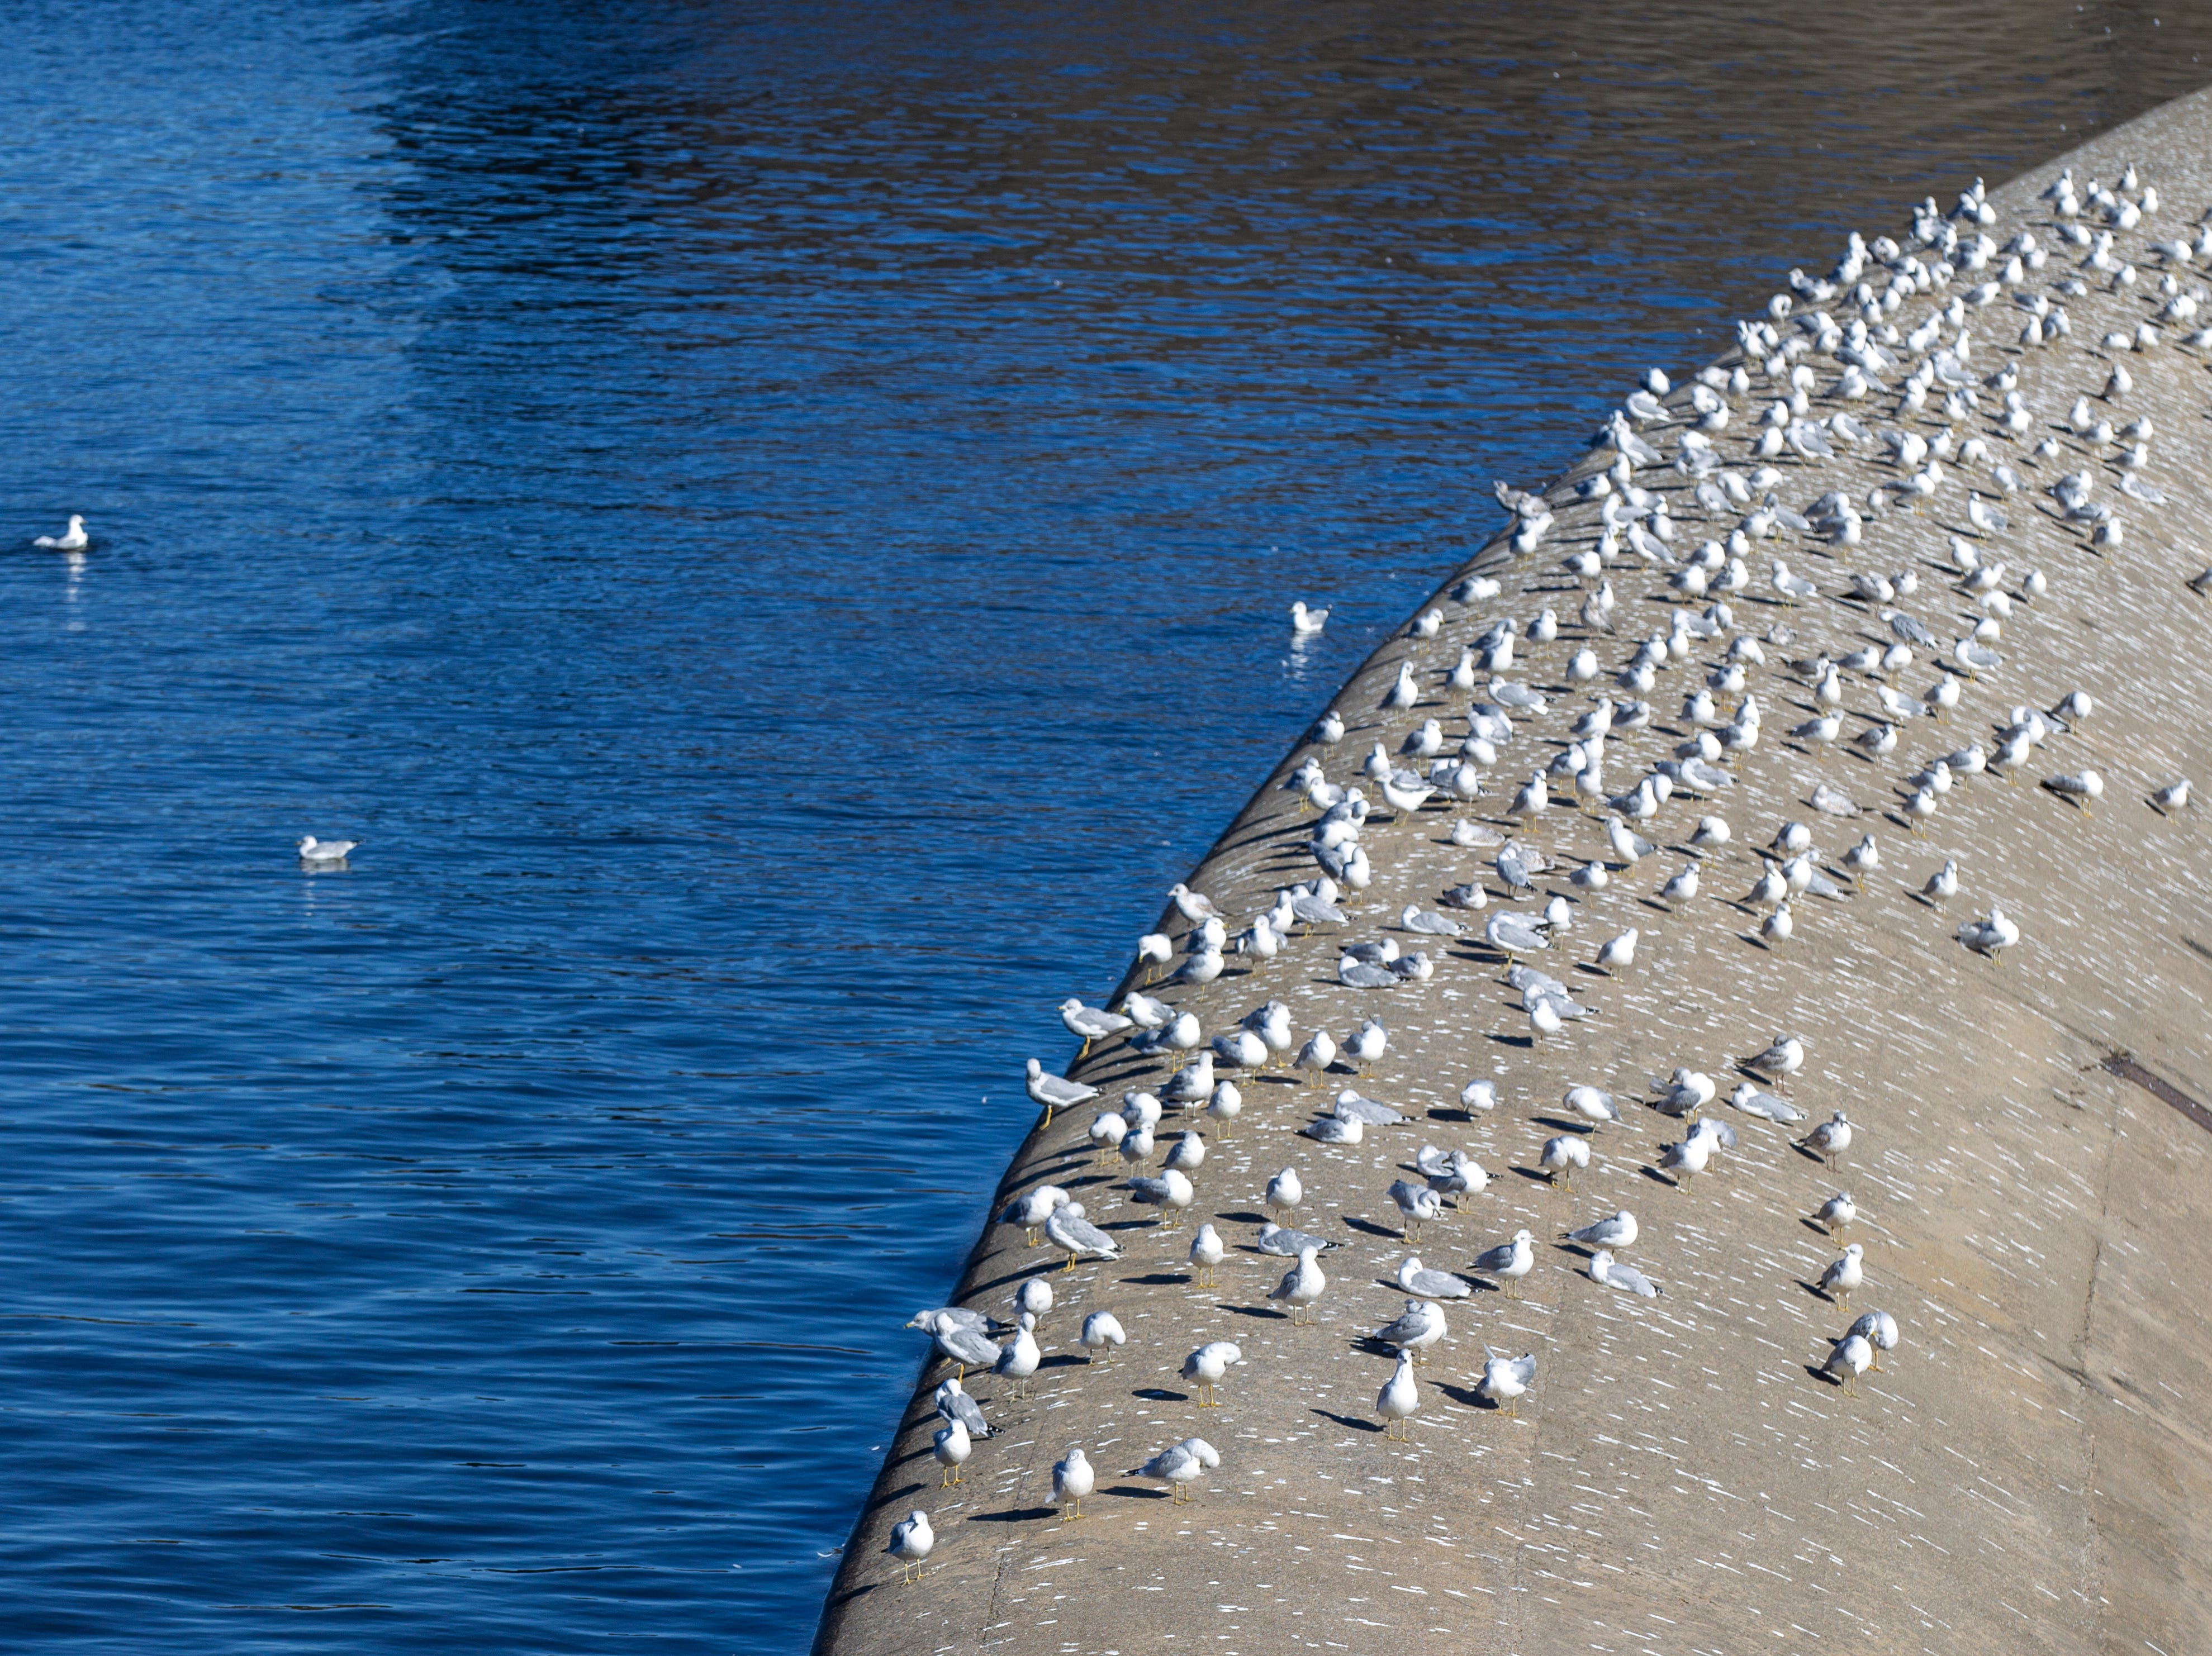 Gulls rest on emergency spillway as water swells up past the beach on Monday, Oct. 15, 2018, at the Coralville Lake dam.